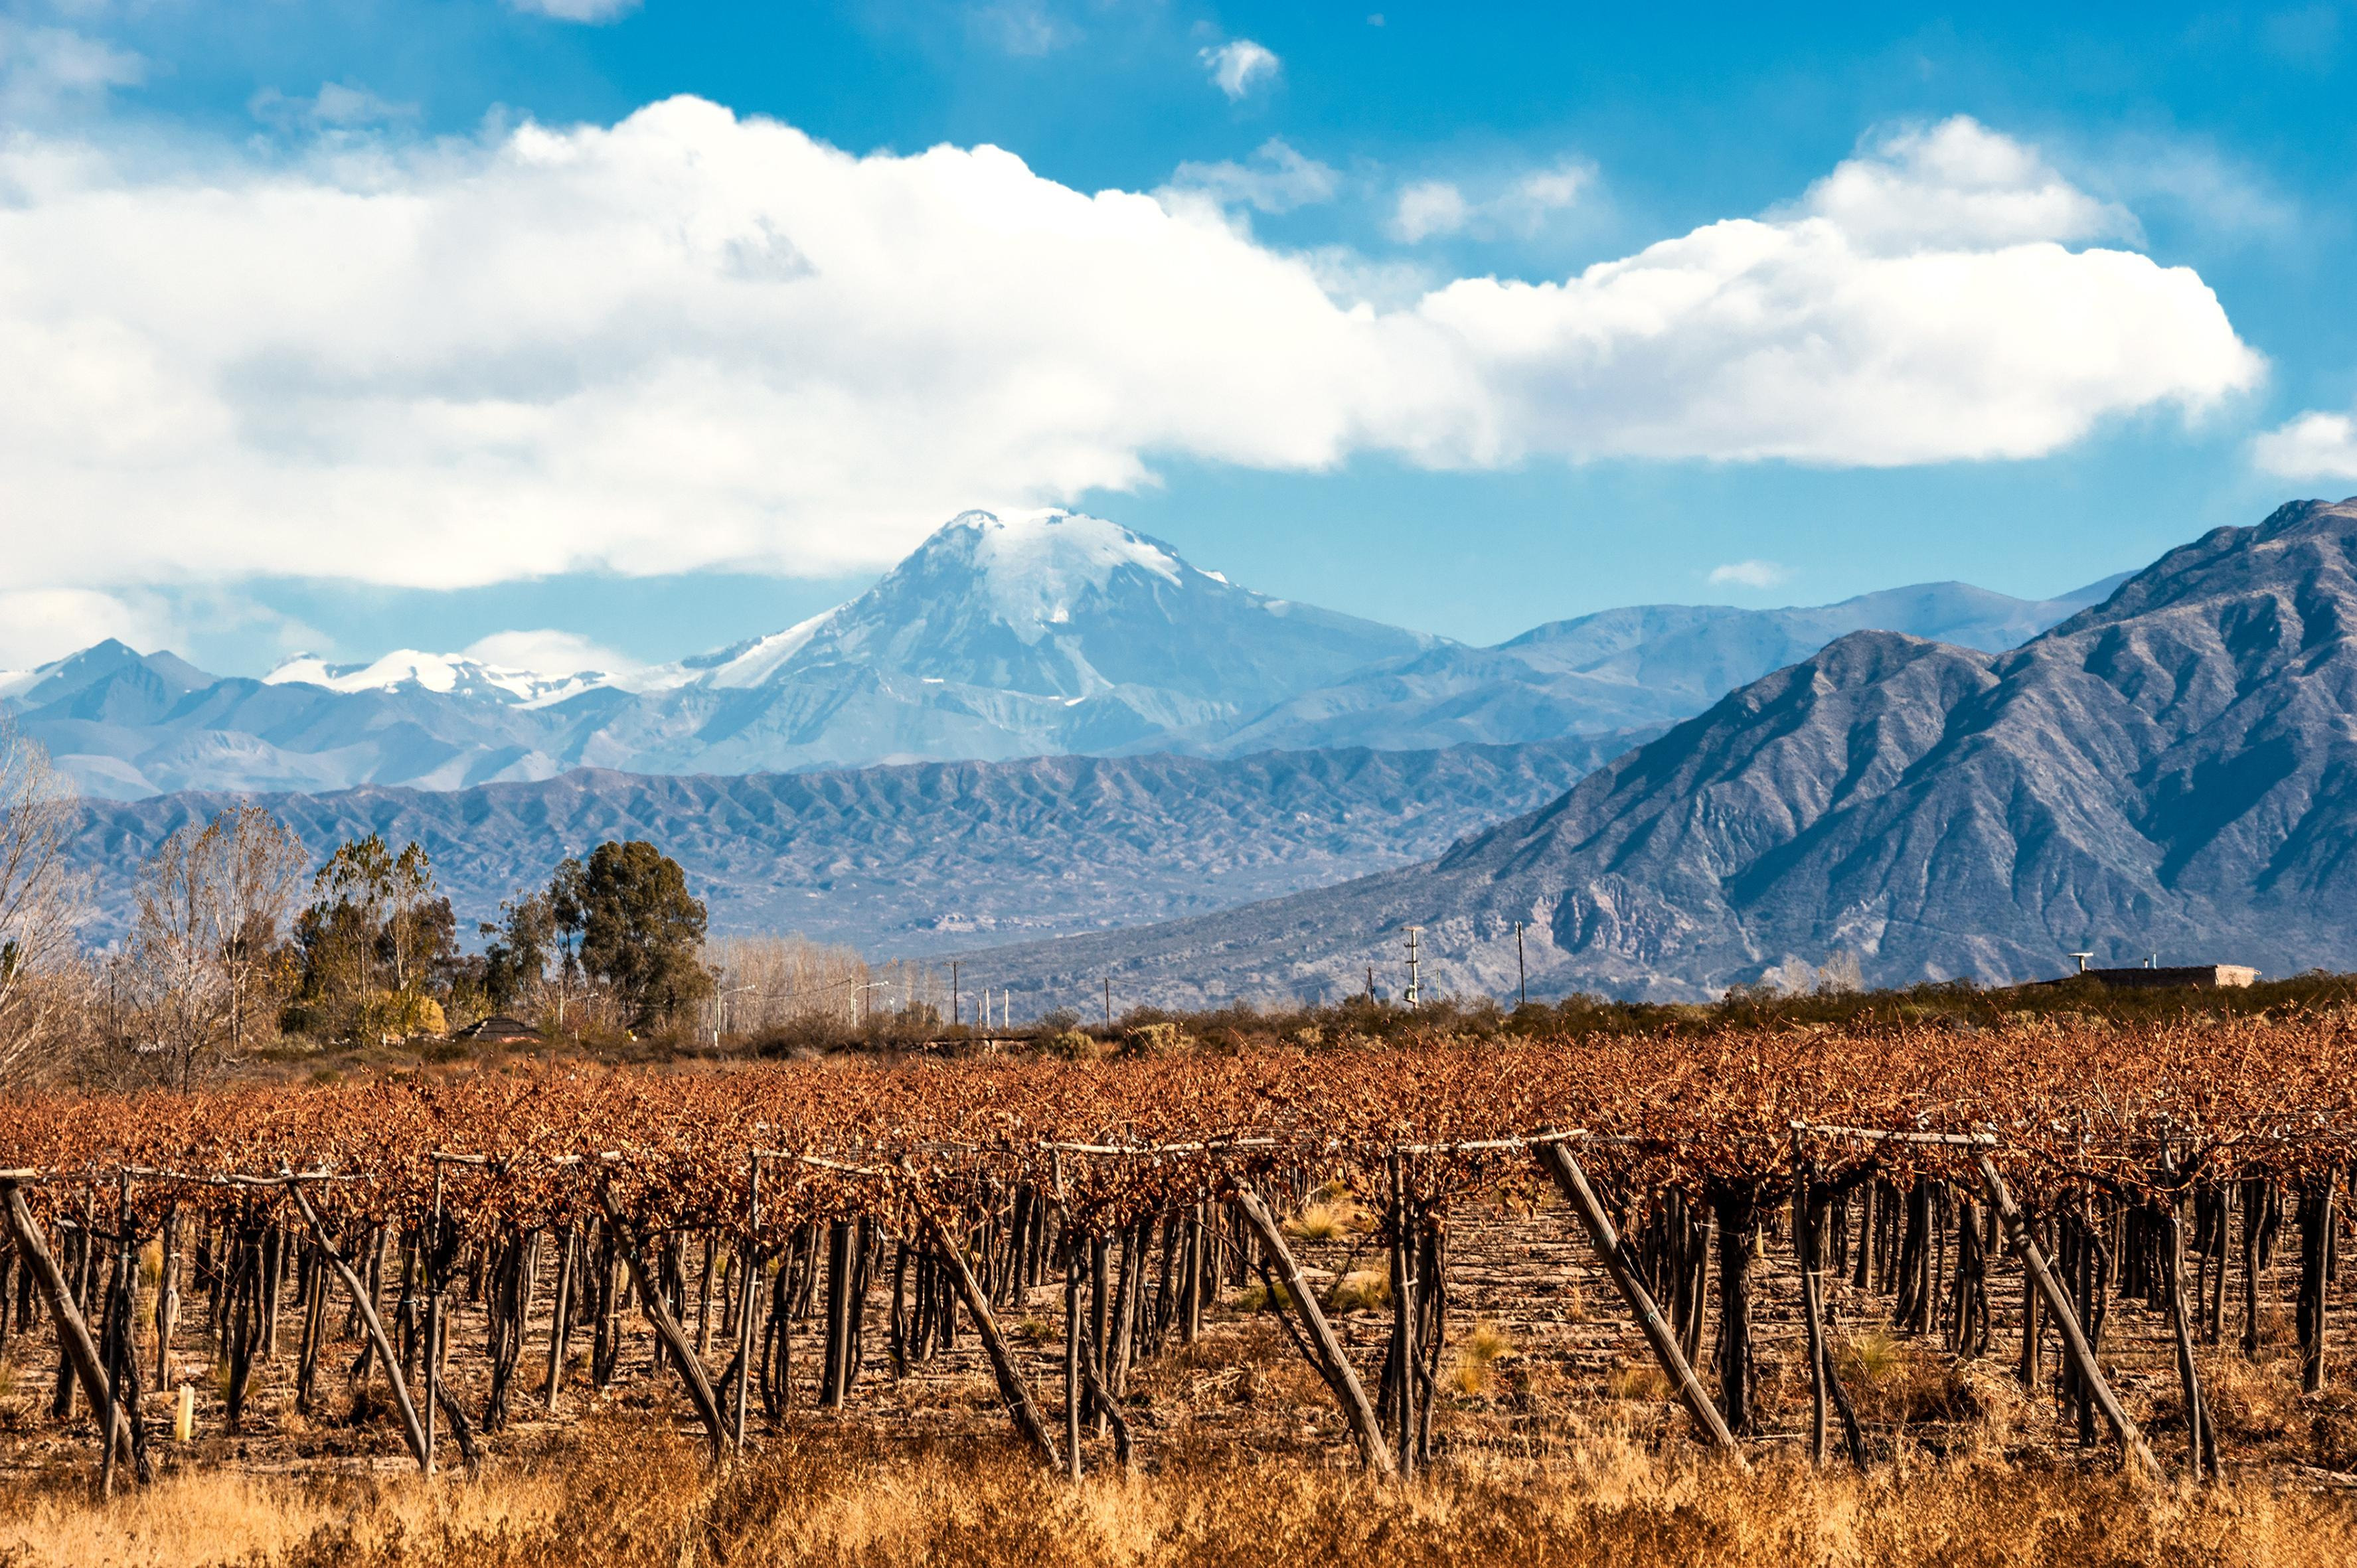 How to Spend 1 Day in Mendoza